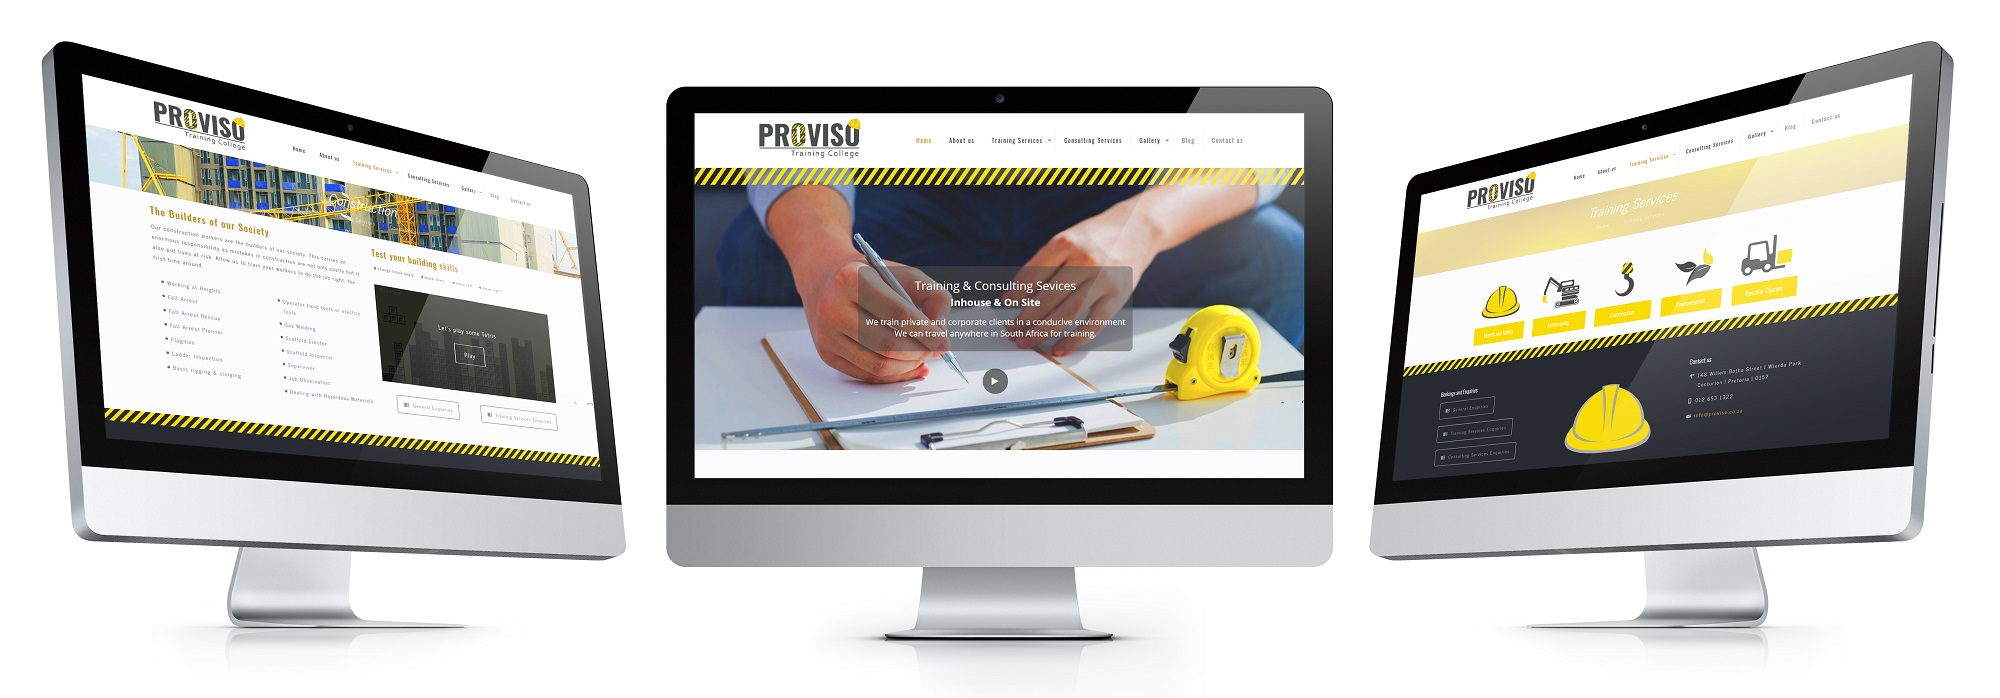 Peri Peri Creative-Proviso Training College-Website